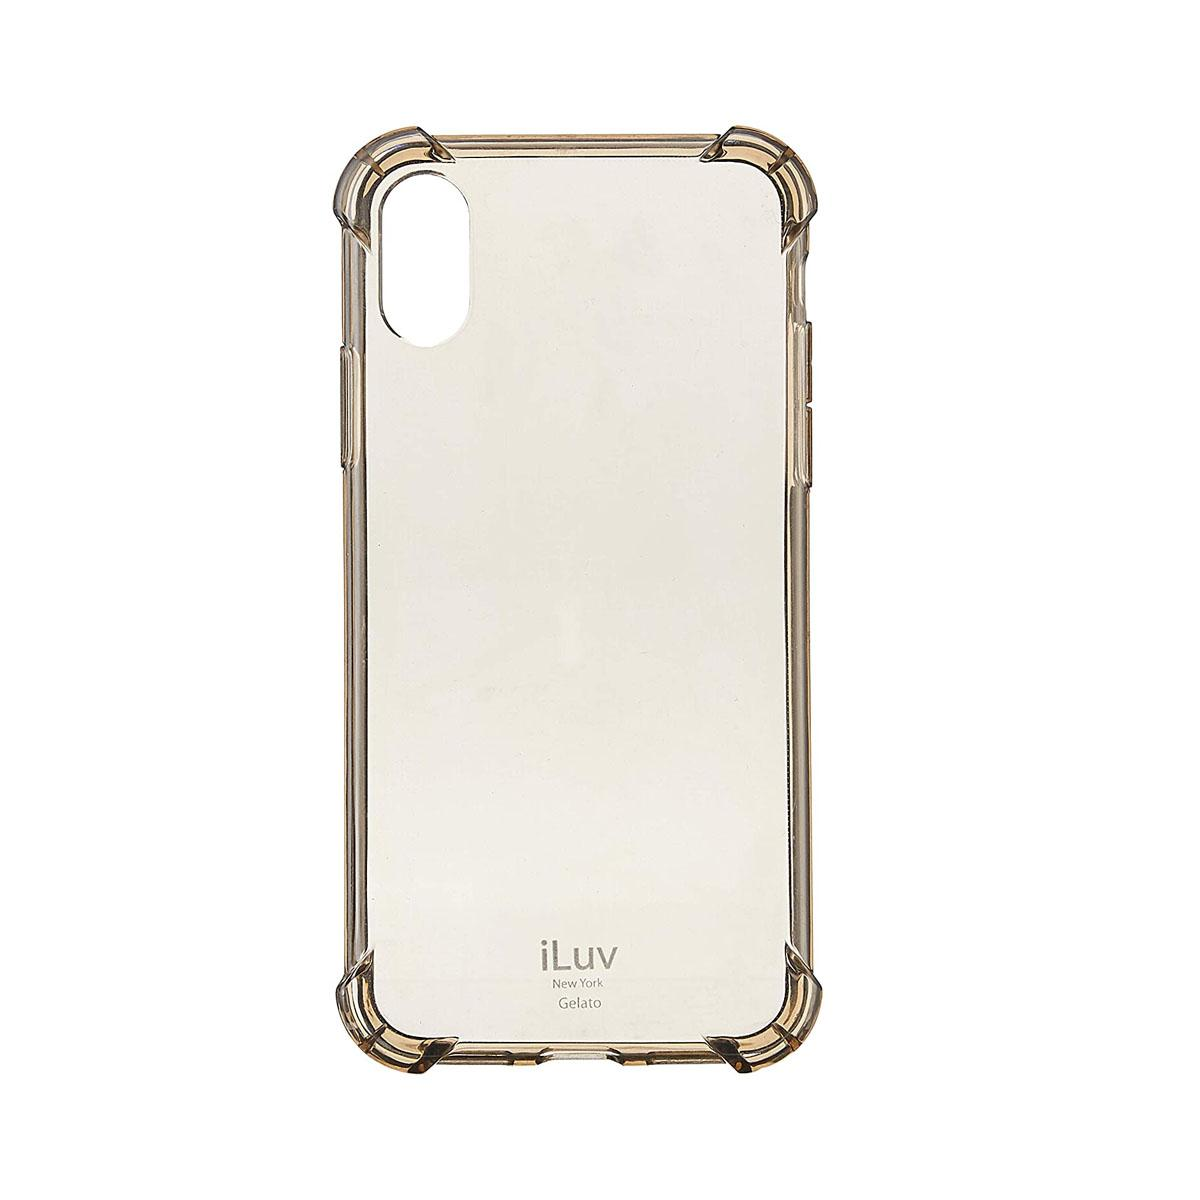 iLuv Soft Flexible Back Cover Case for iPhone X